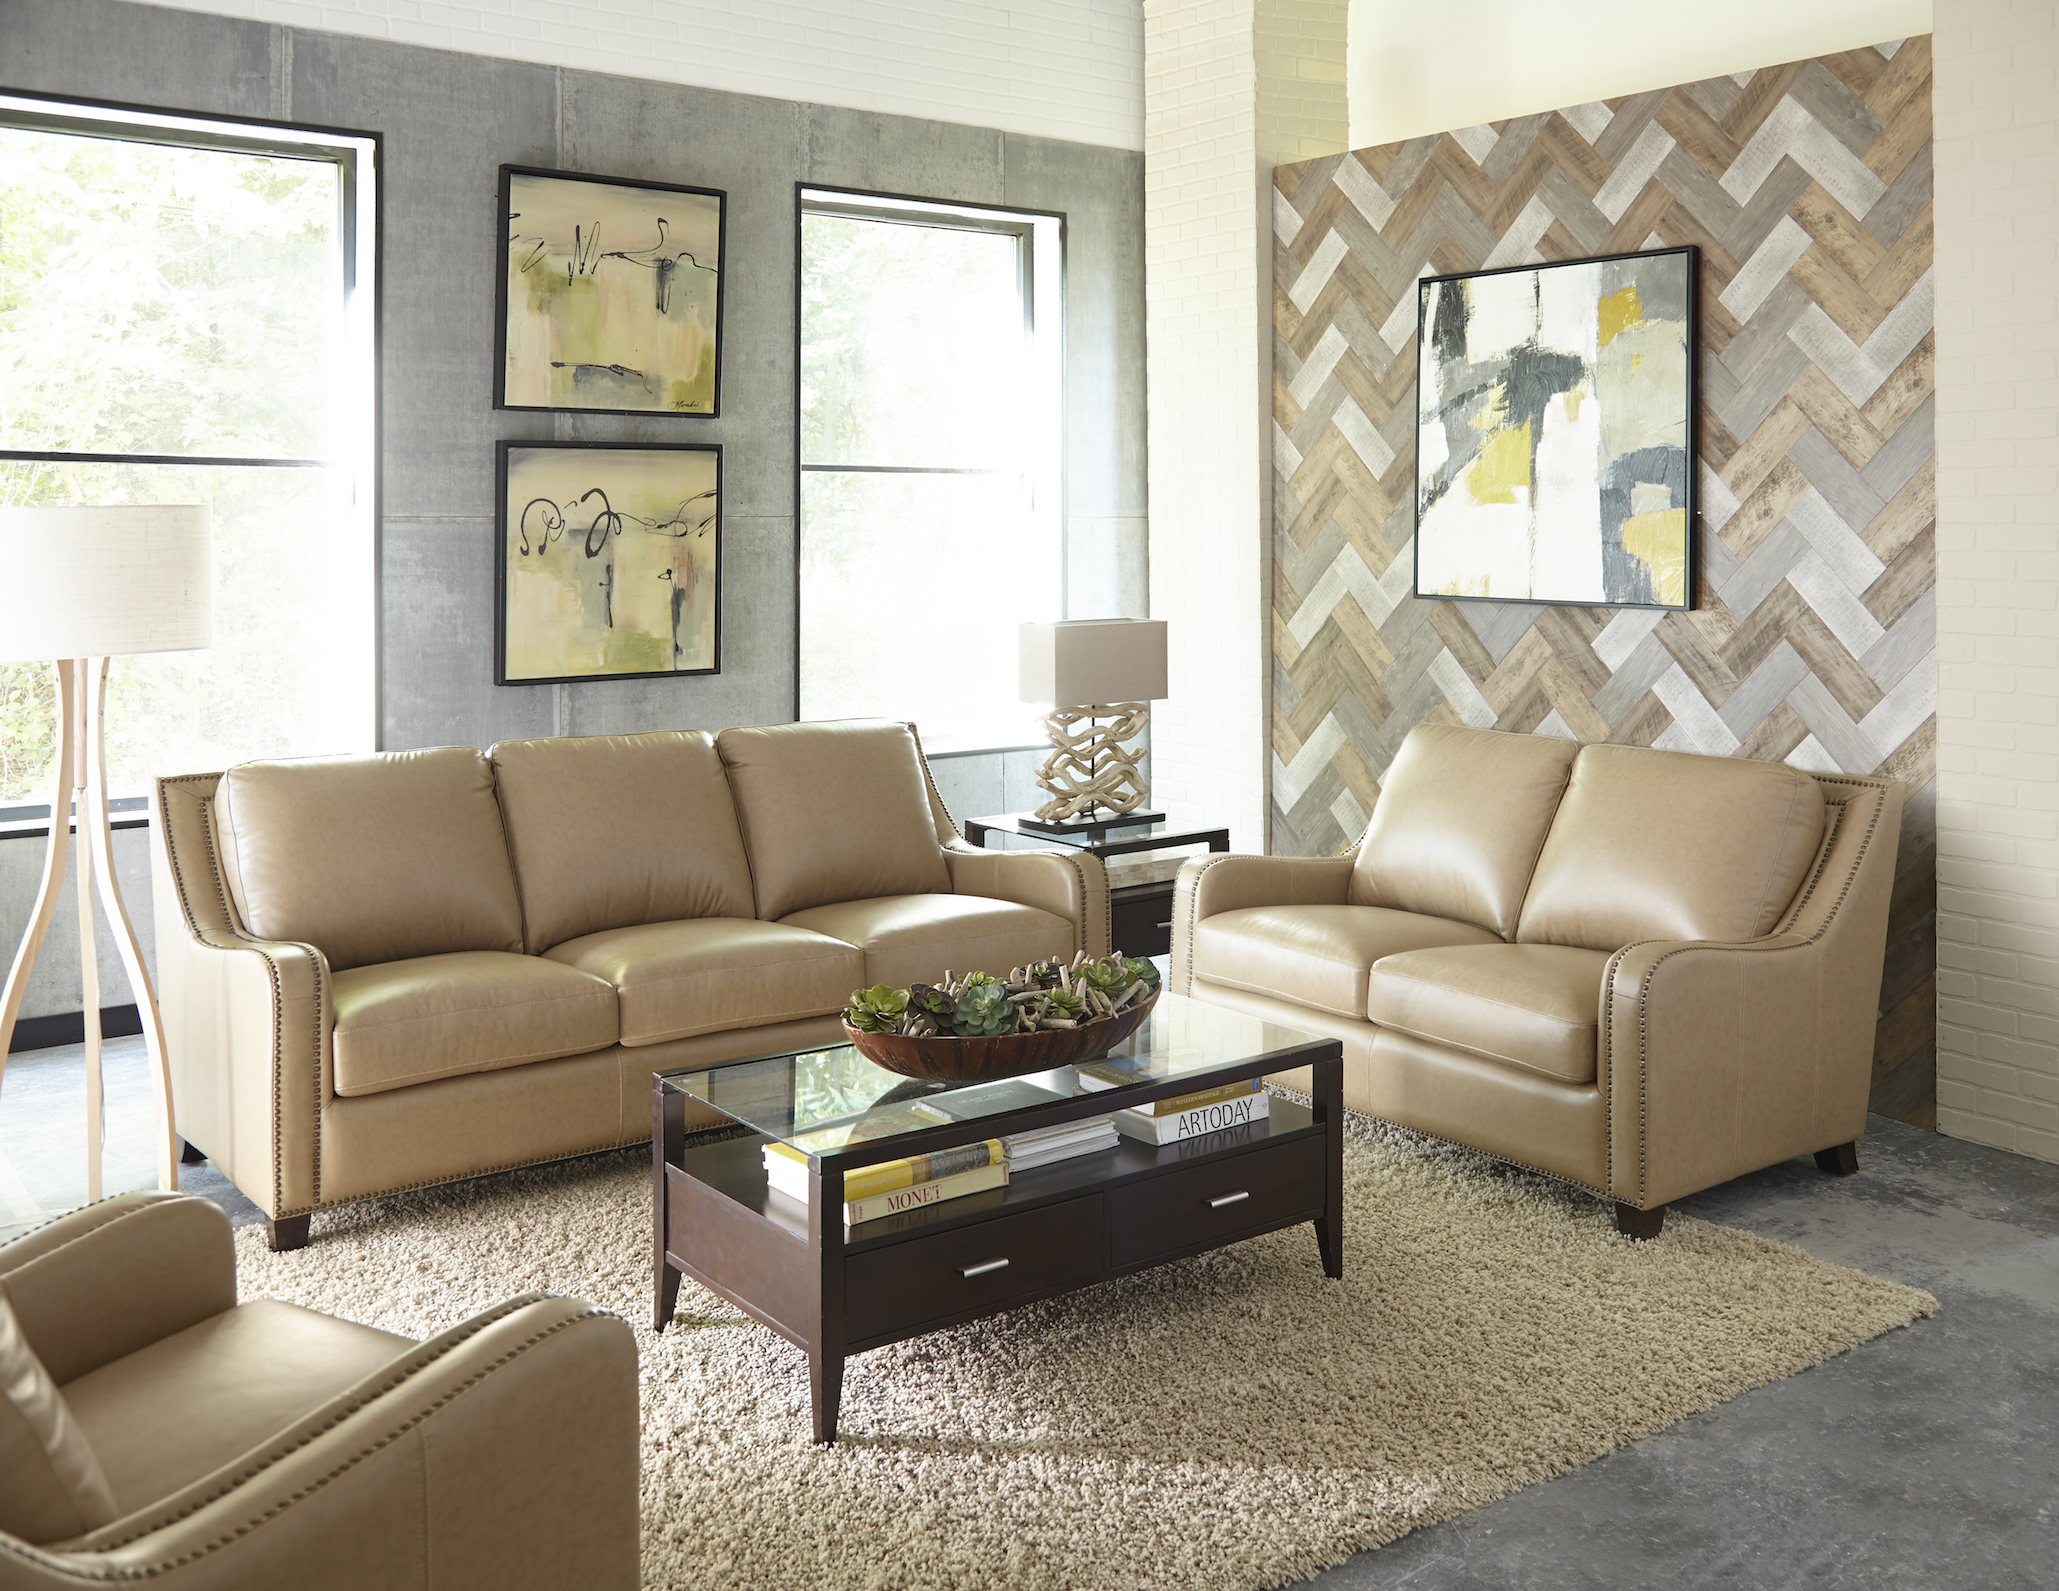 Denver 1636 Leather Sofa in Camel IN STOCK FAST